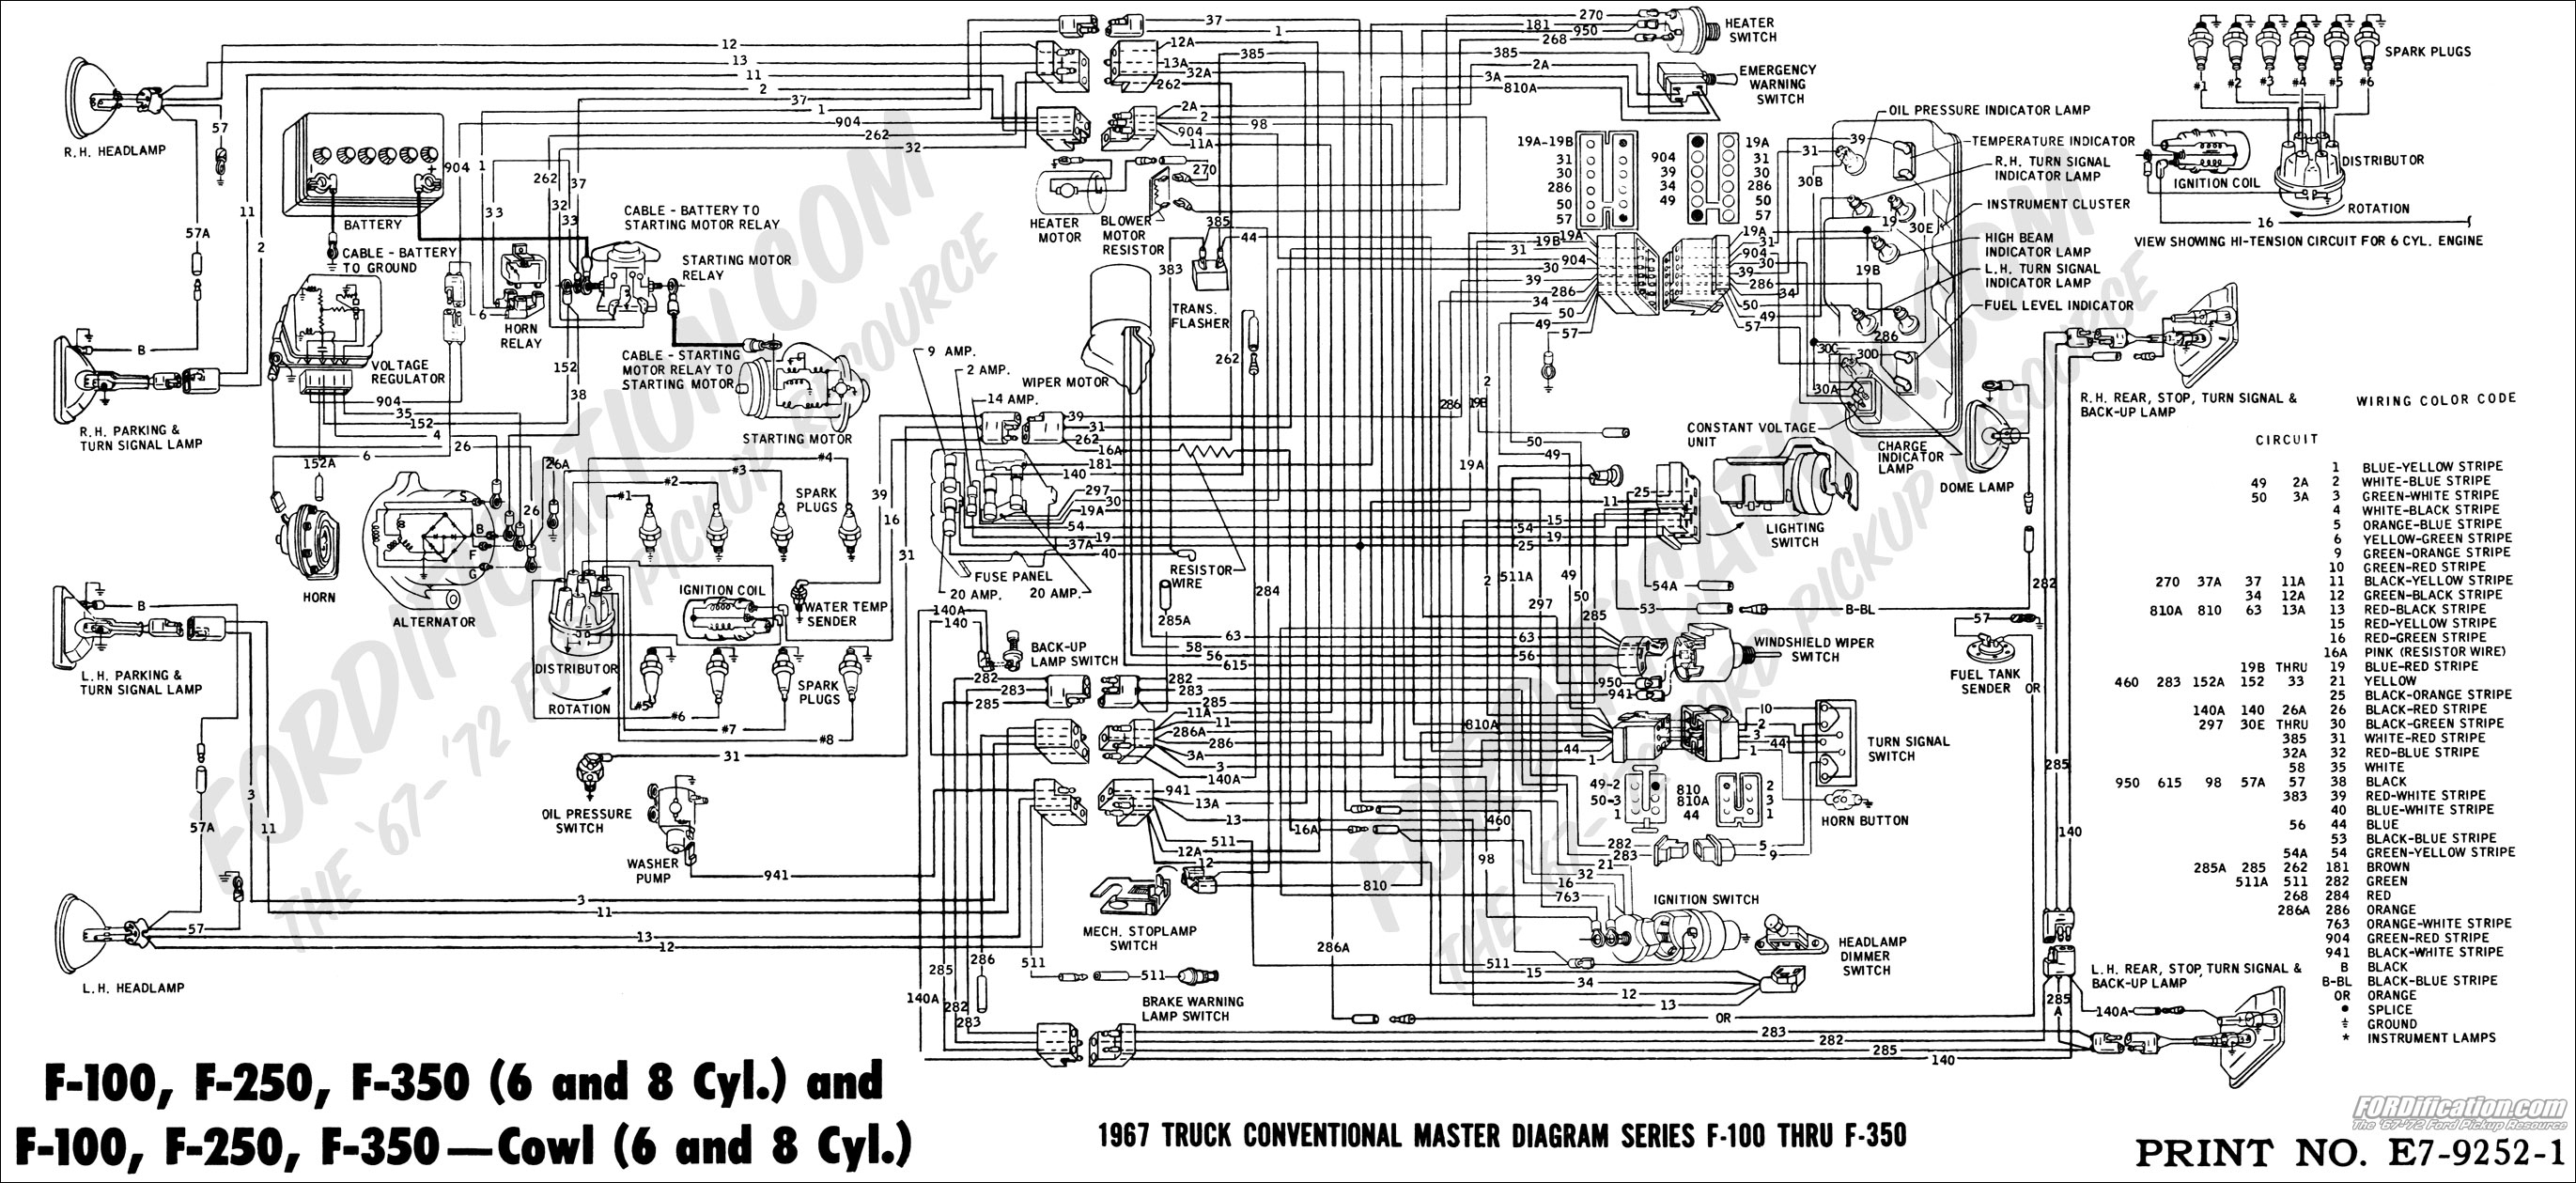 Ford F150 Wiring Harness Diagram - Wiring Diagrams Hubs - Ford Ranger Wiring Harness Diagram